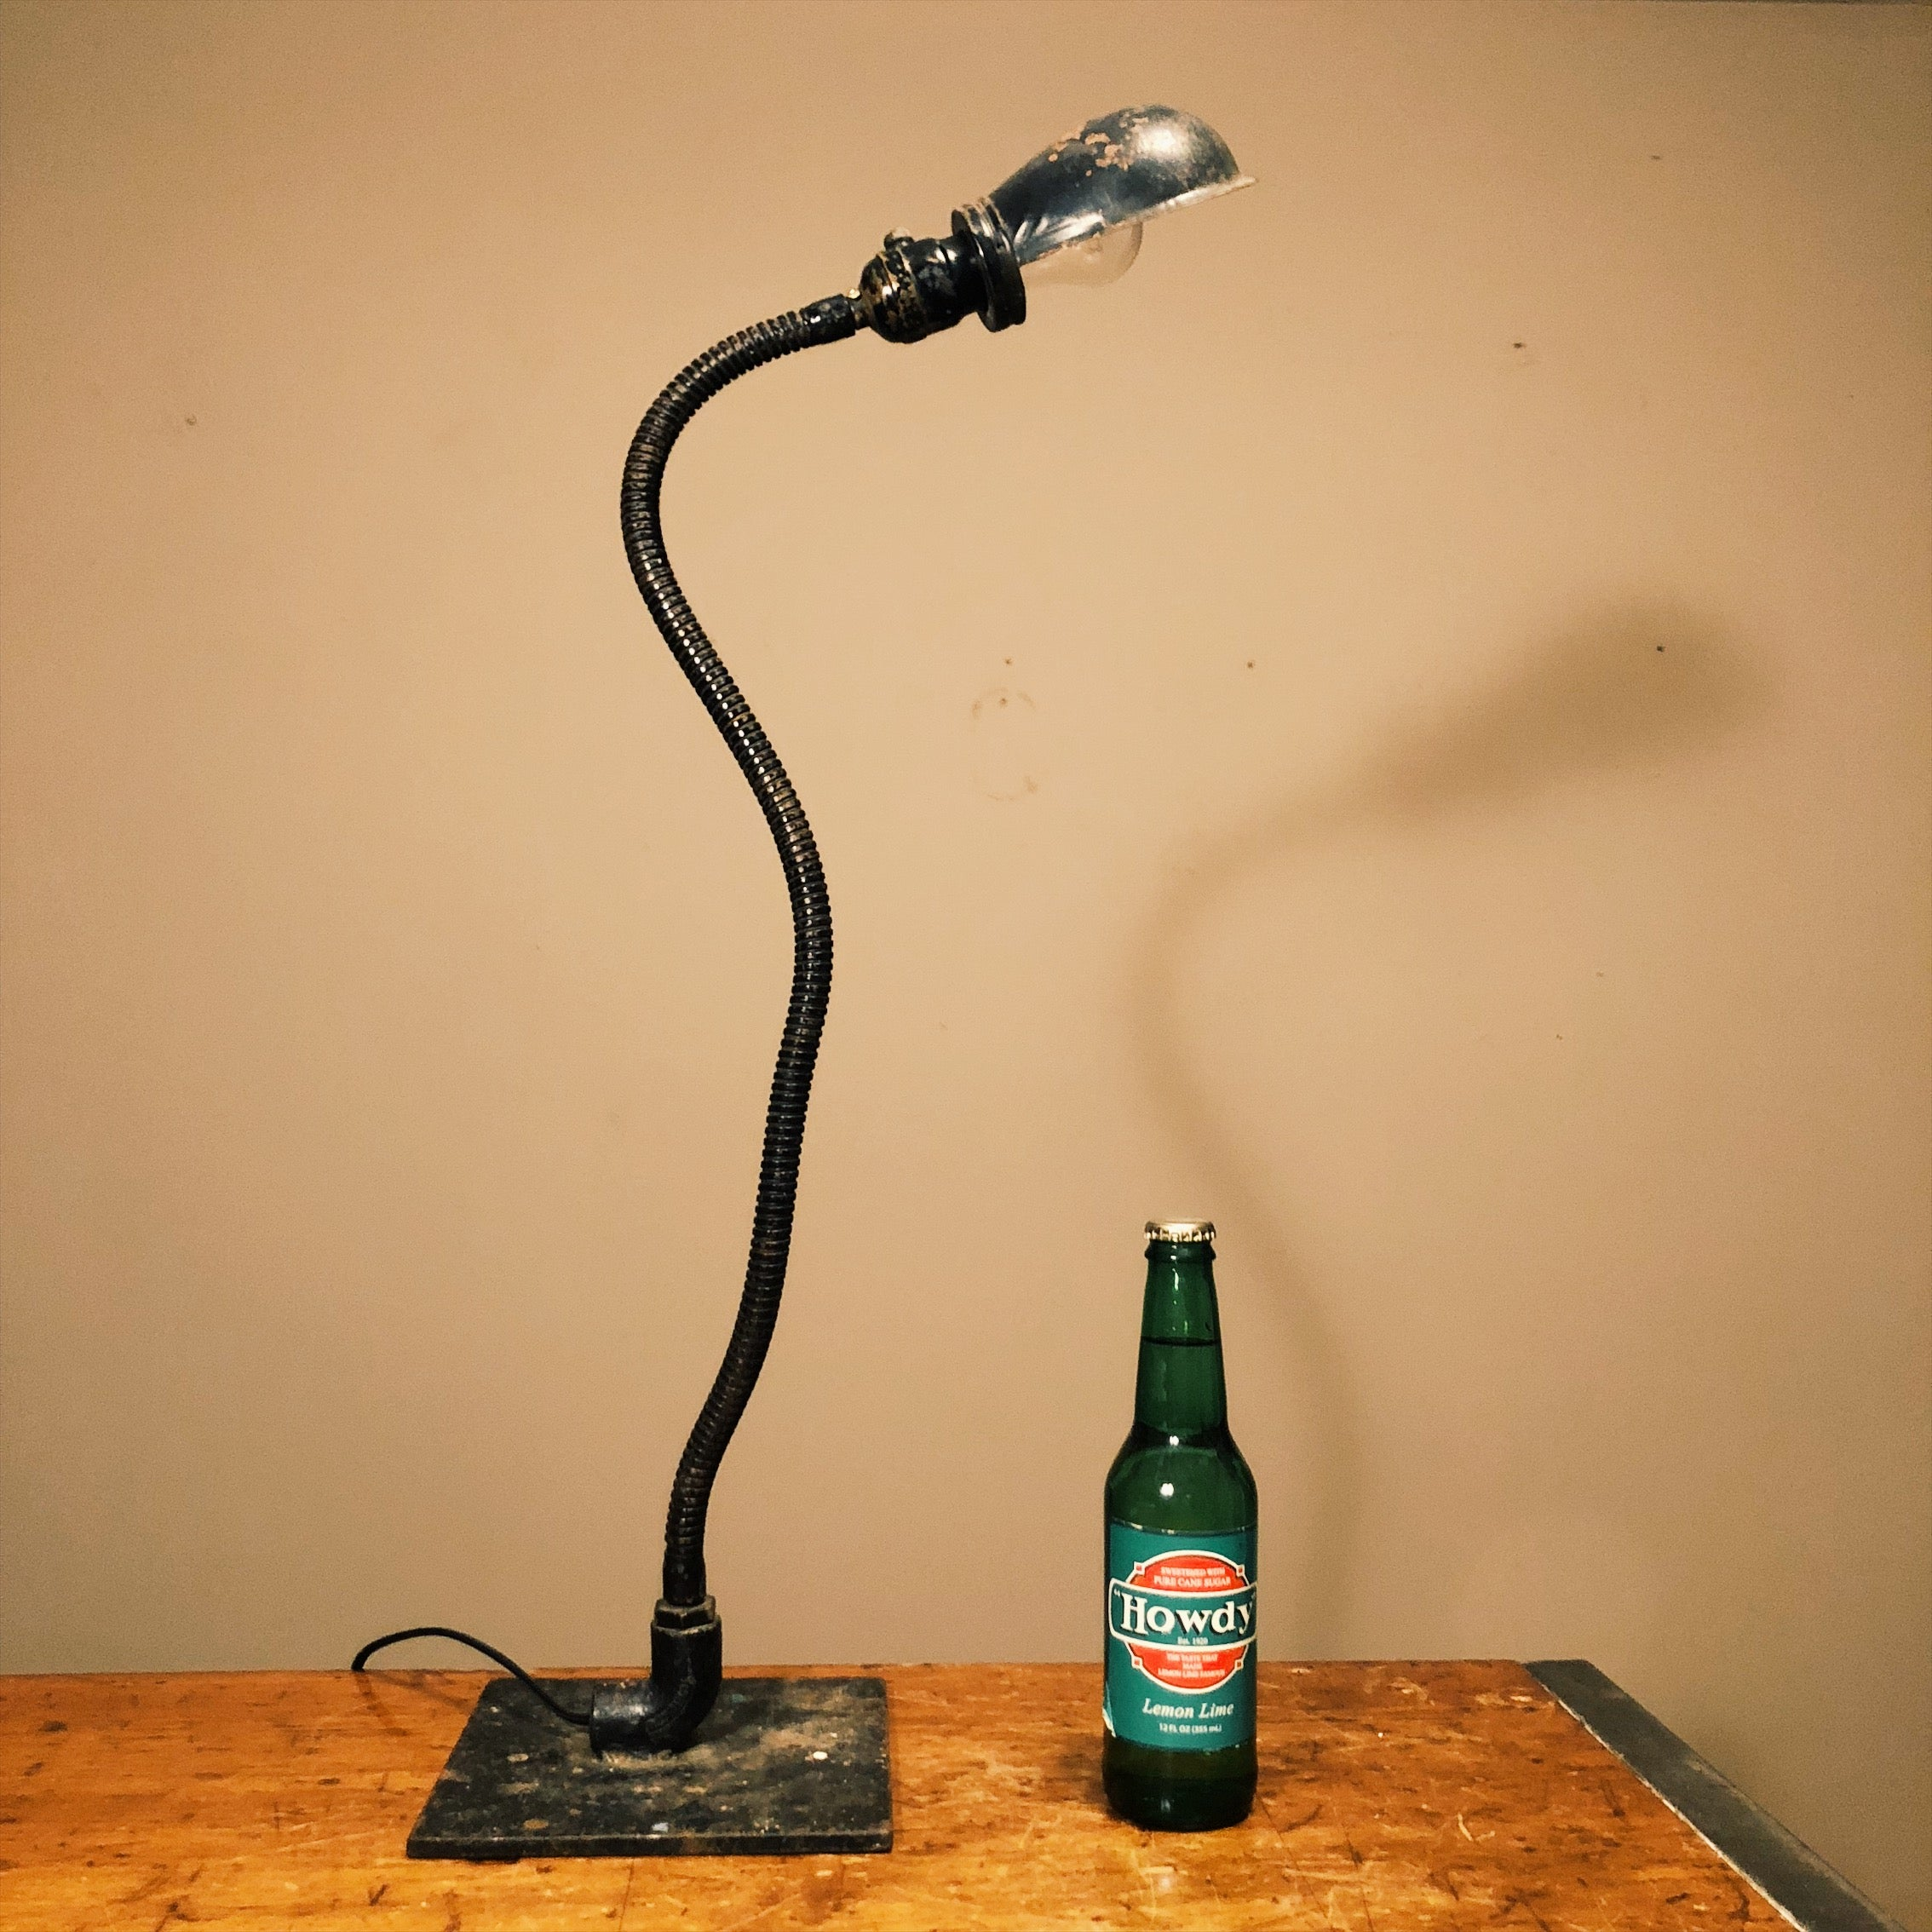 Vintage Industrial Machinist Table Lamp with Hubbell Shade  Gooseneck Frankenstein Light - Snake Design